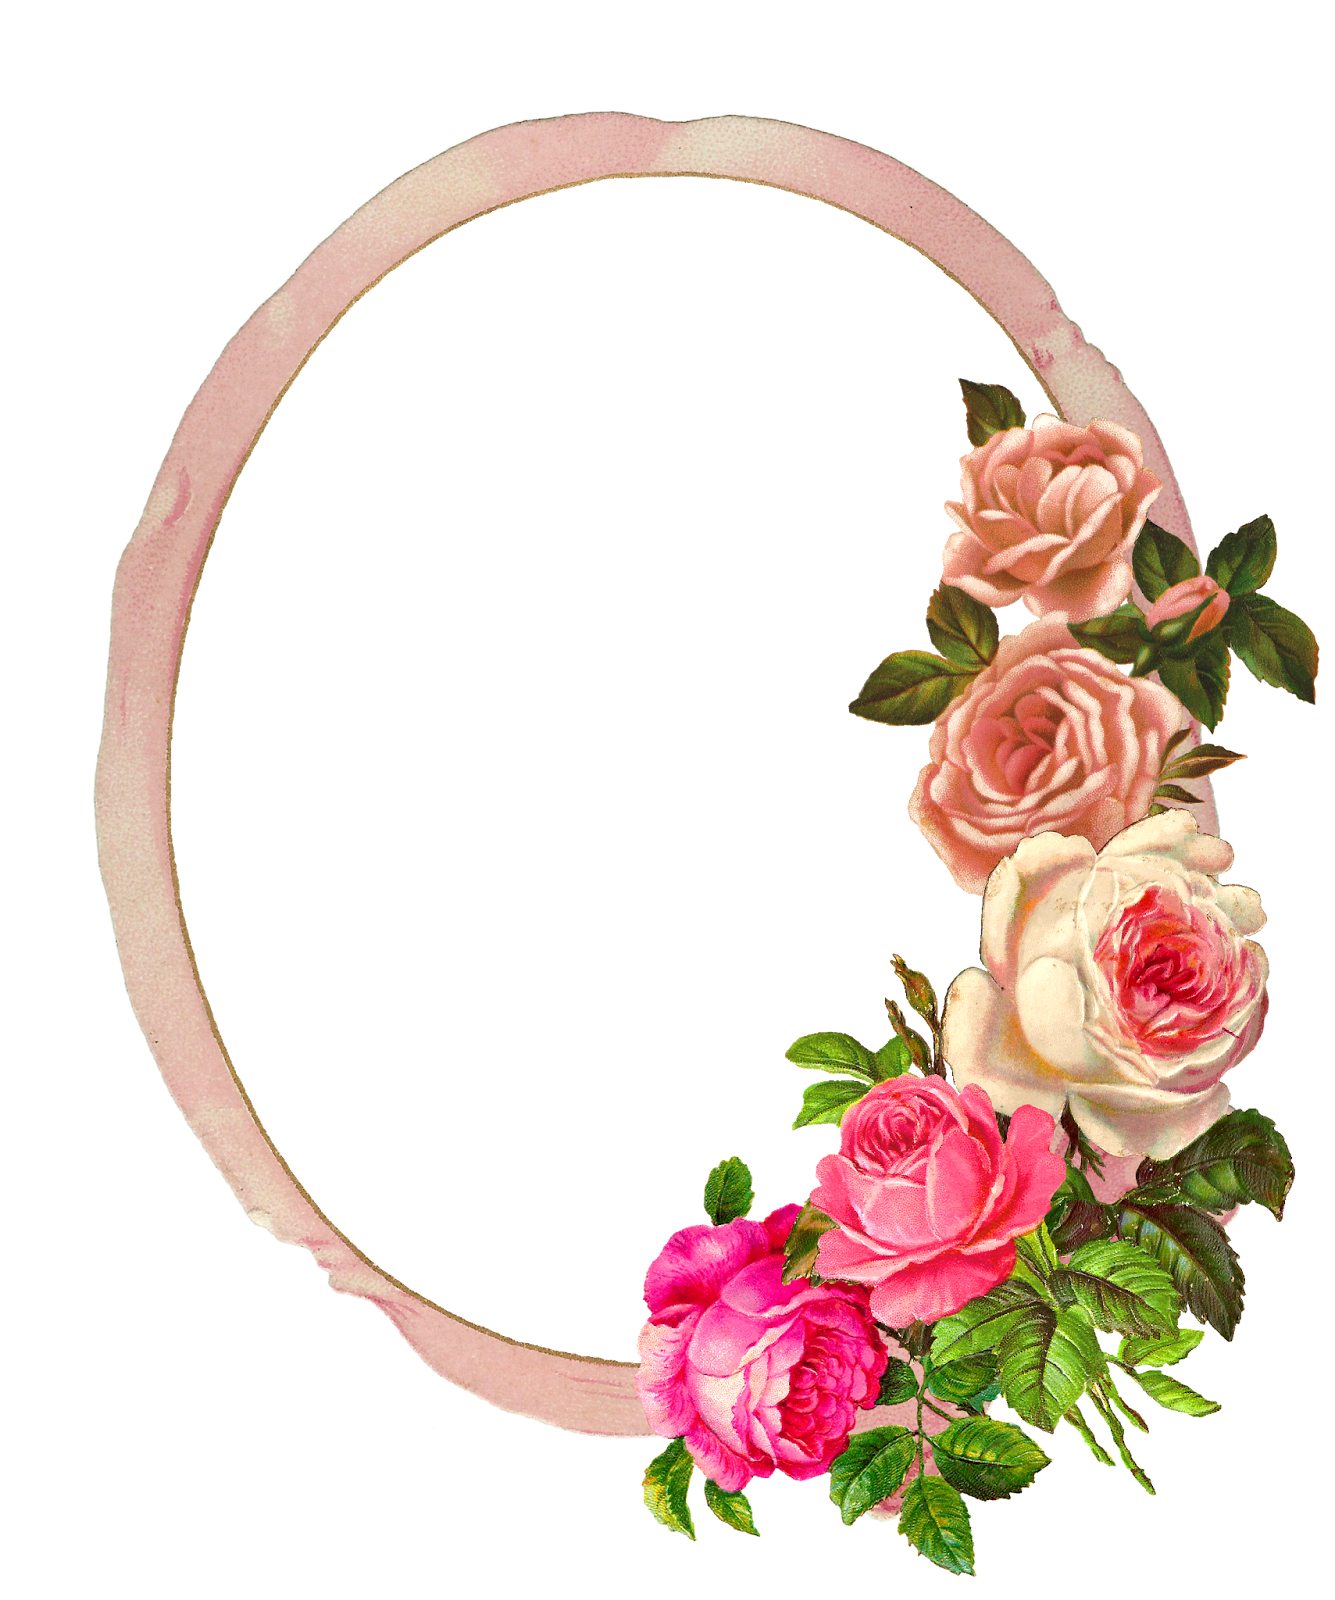 The graphics monarch free pink rose digital flower frame for Free rose garden designs